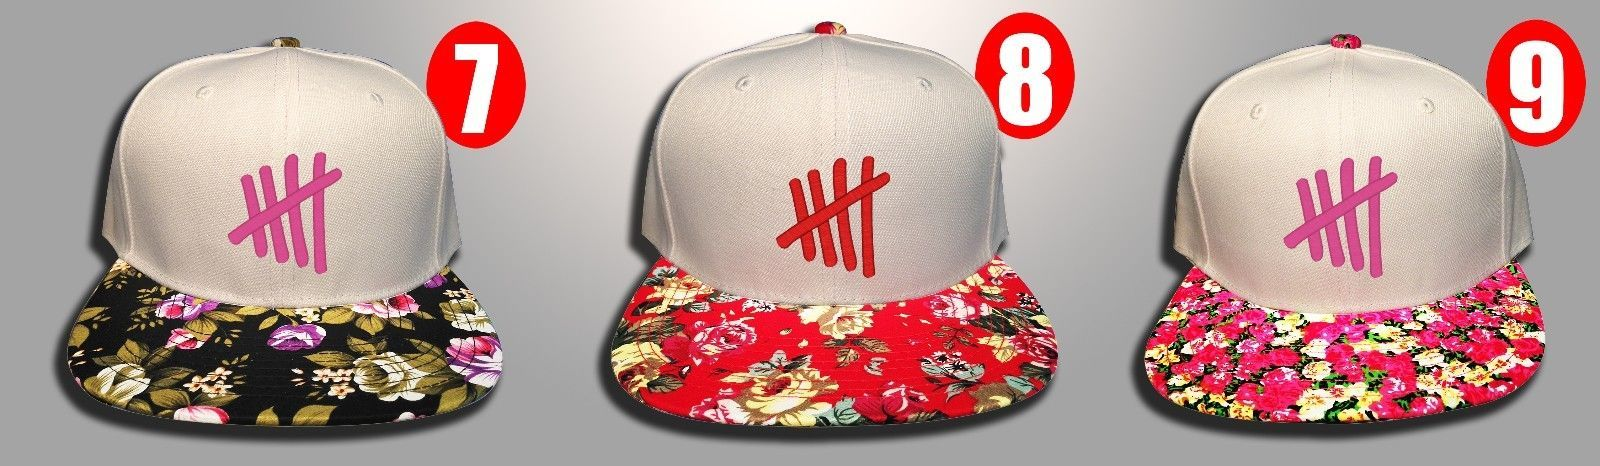 5 Seconds of Summer, 5 SOS, FLoral Colors, Snapback Hat New